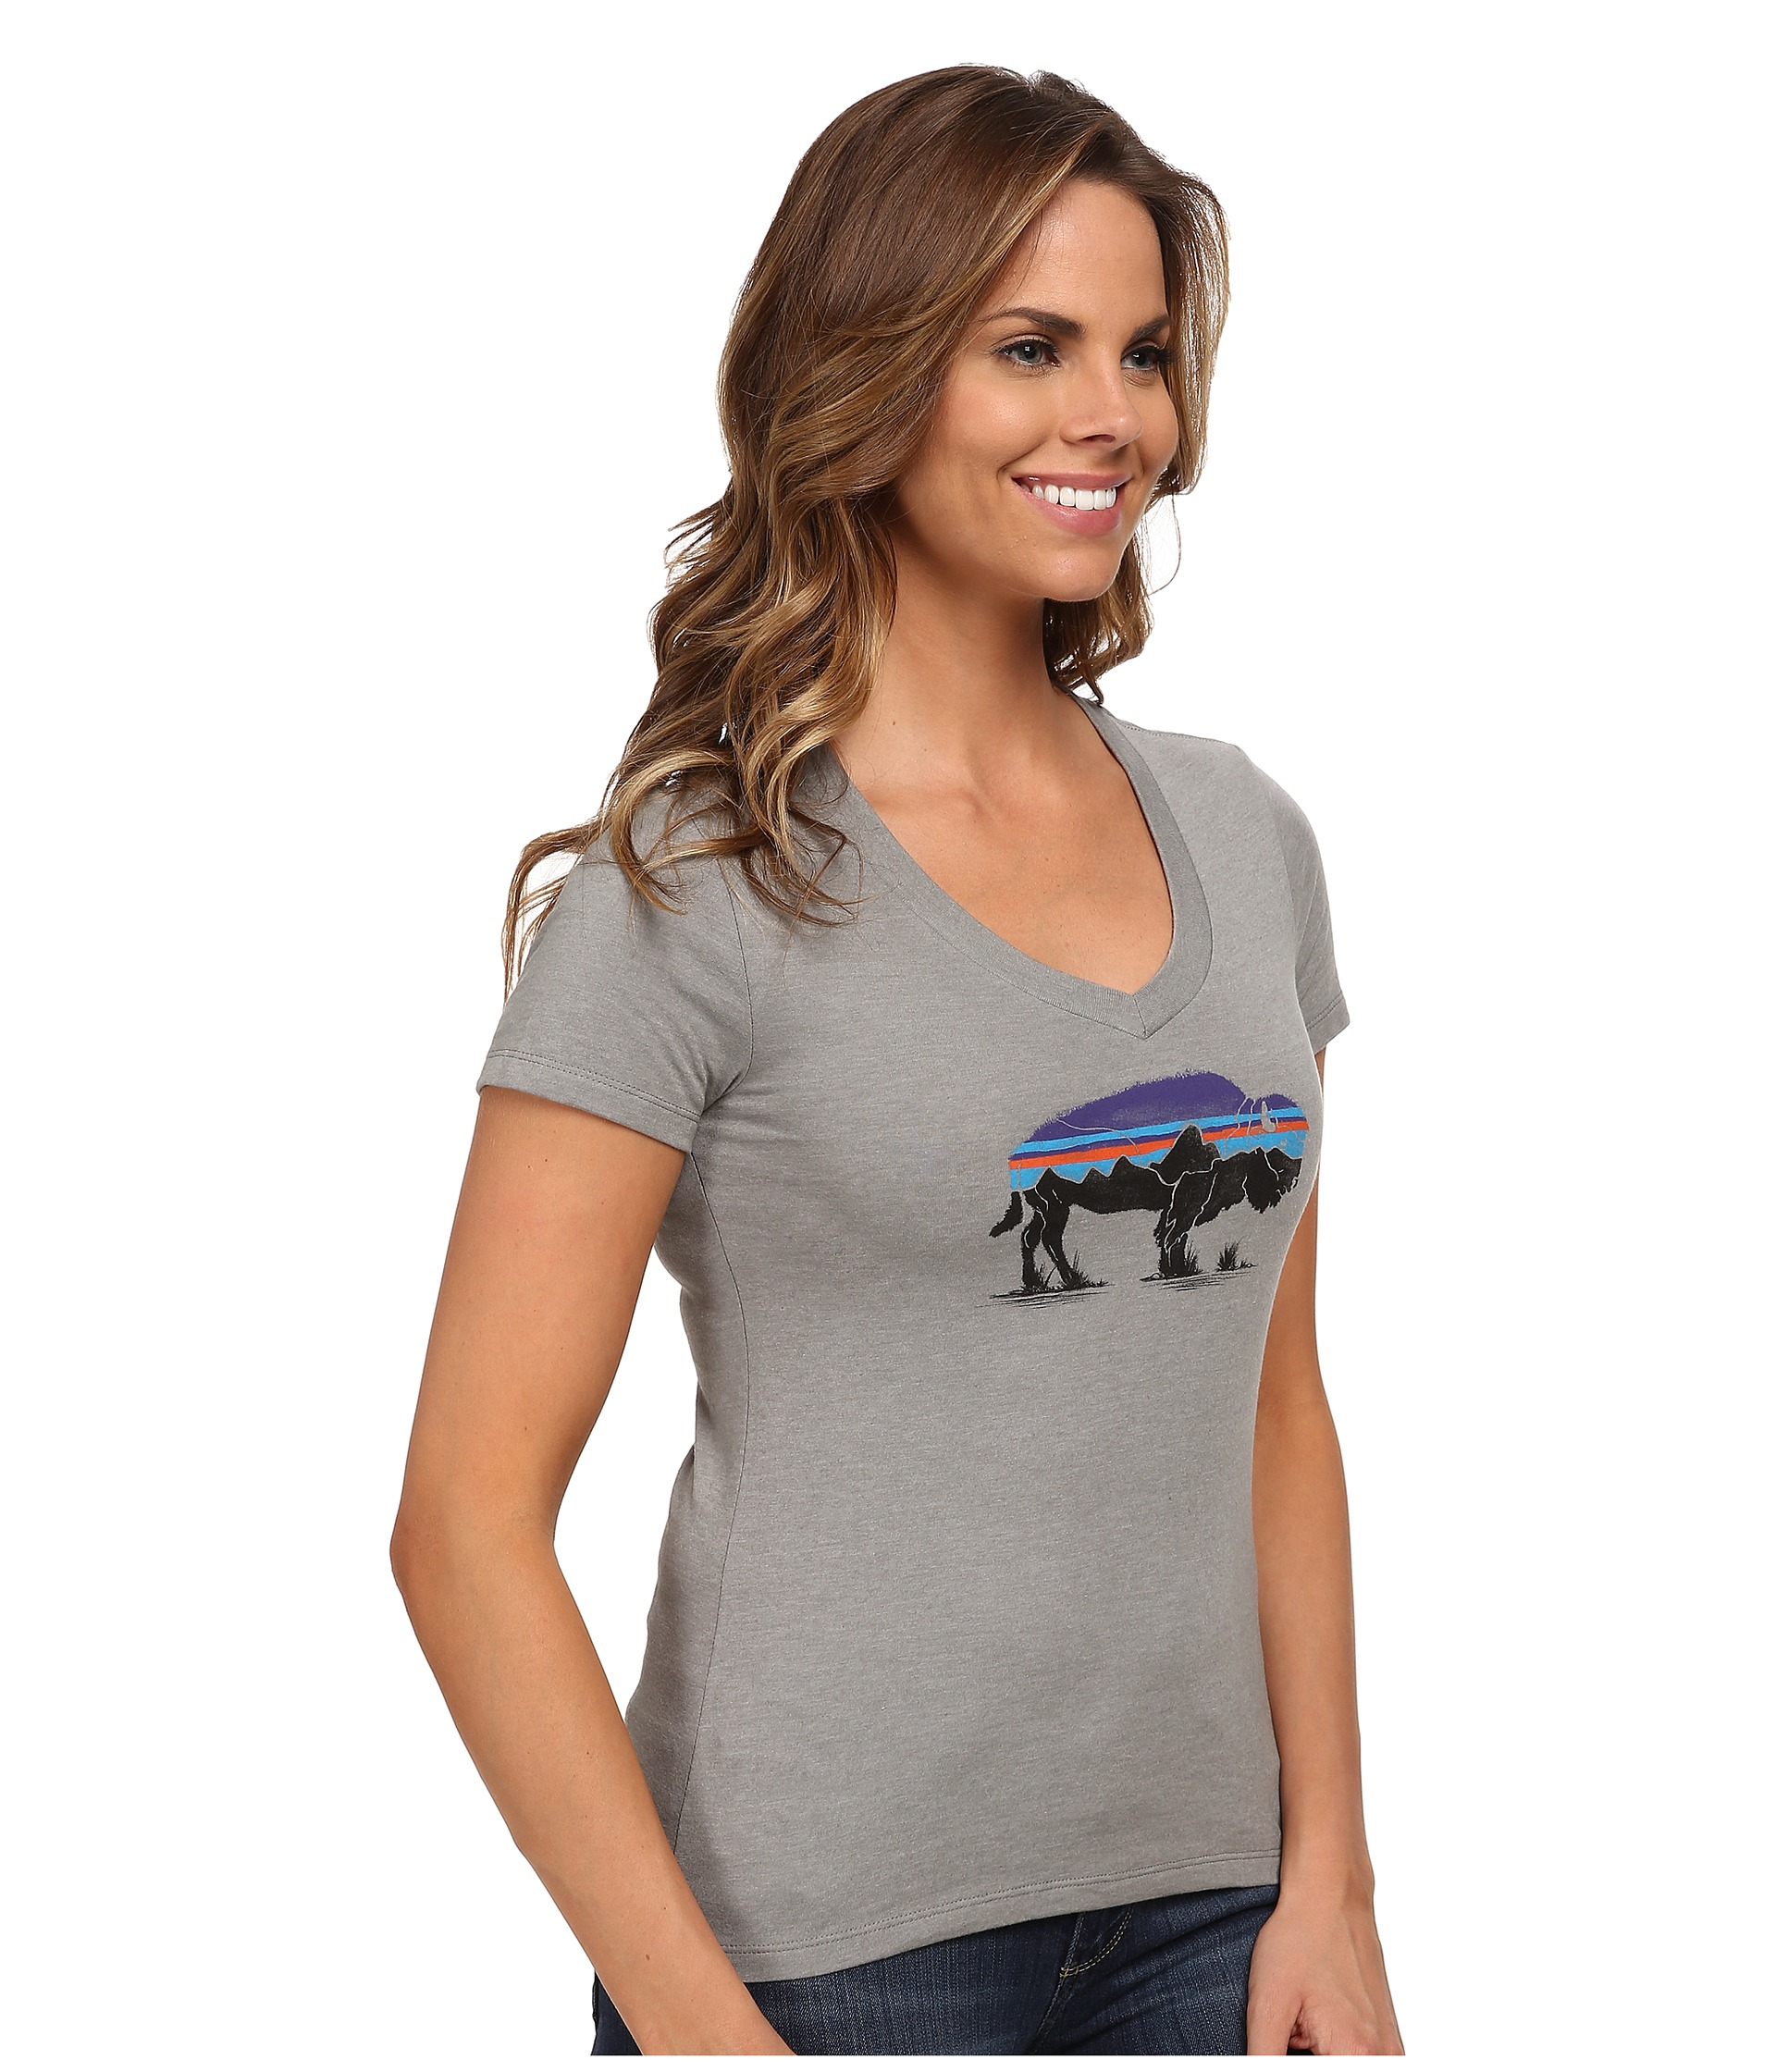 fcc7259f6422a8 Patagonia Fitz Roy Bison Cotton/poly T-shirt in Gray - Lyst